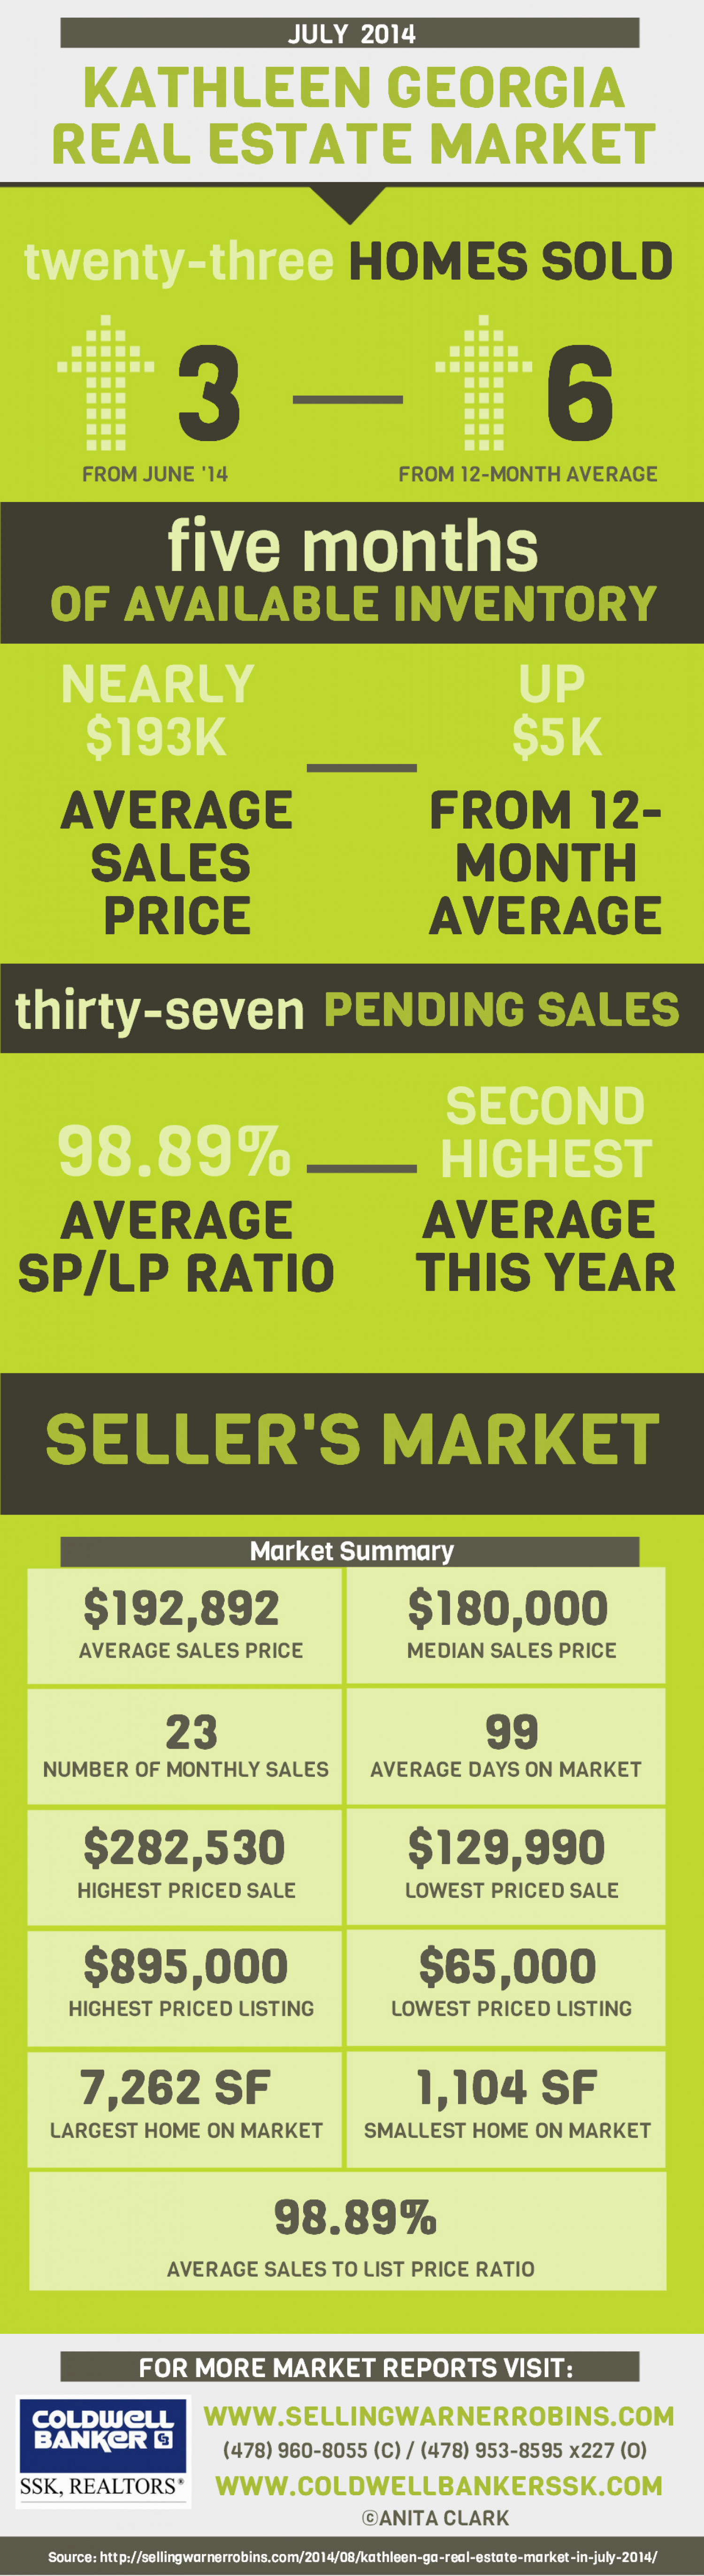 Kathleen GA Real Estate Market in July 2014 Infographic